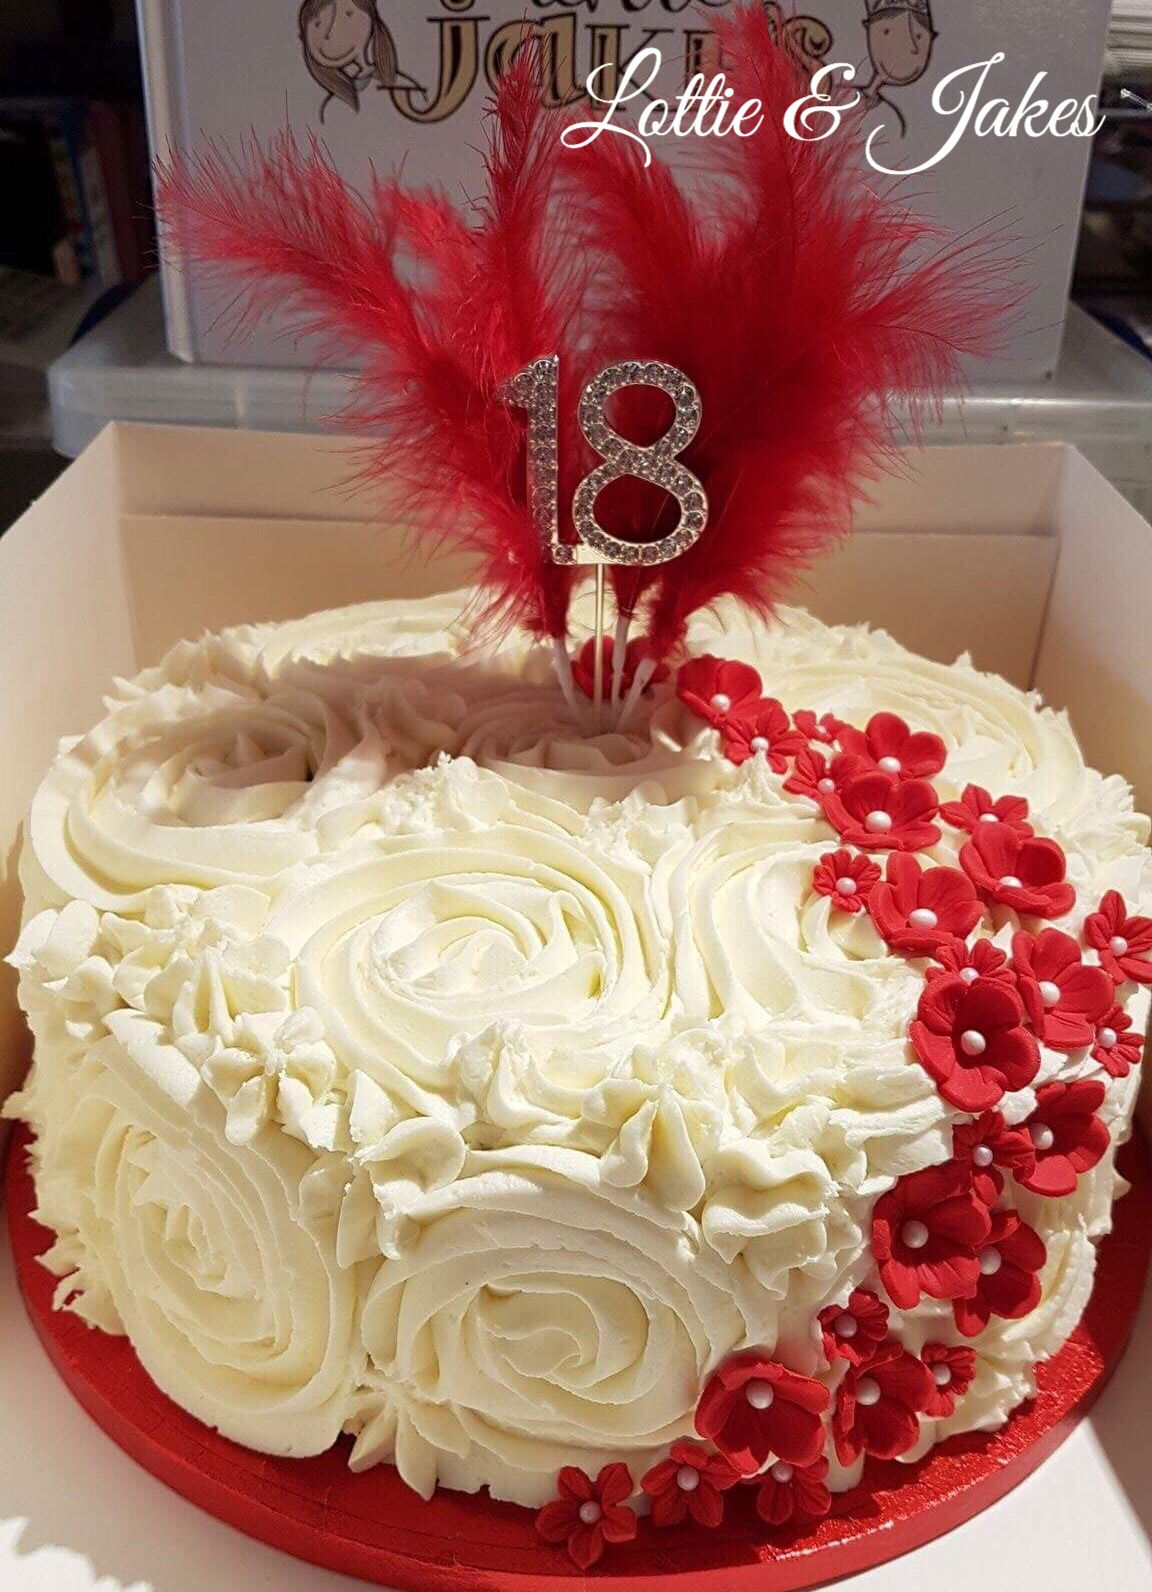 Fabulous 18th Birthday Cake with cute red flowers and